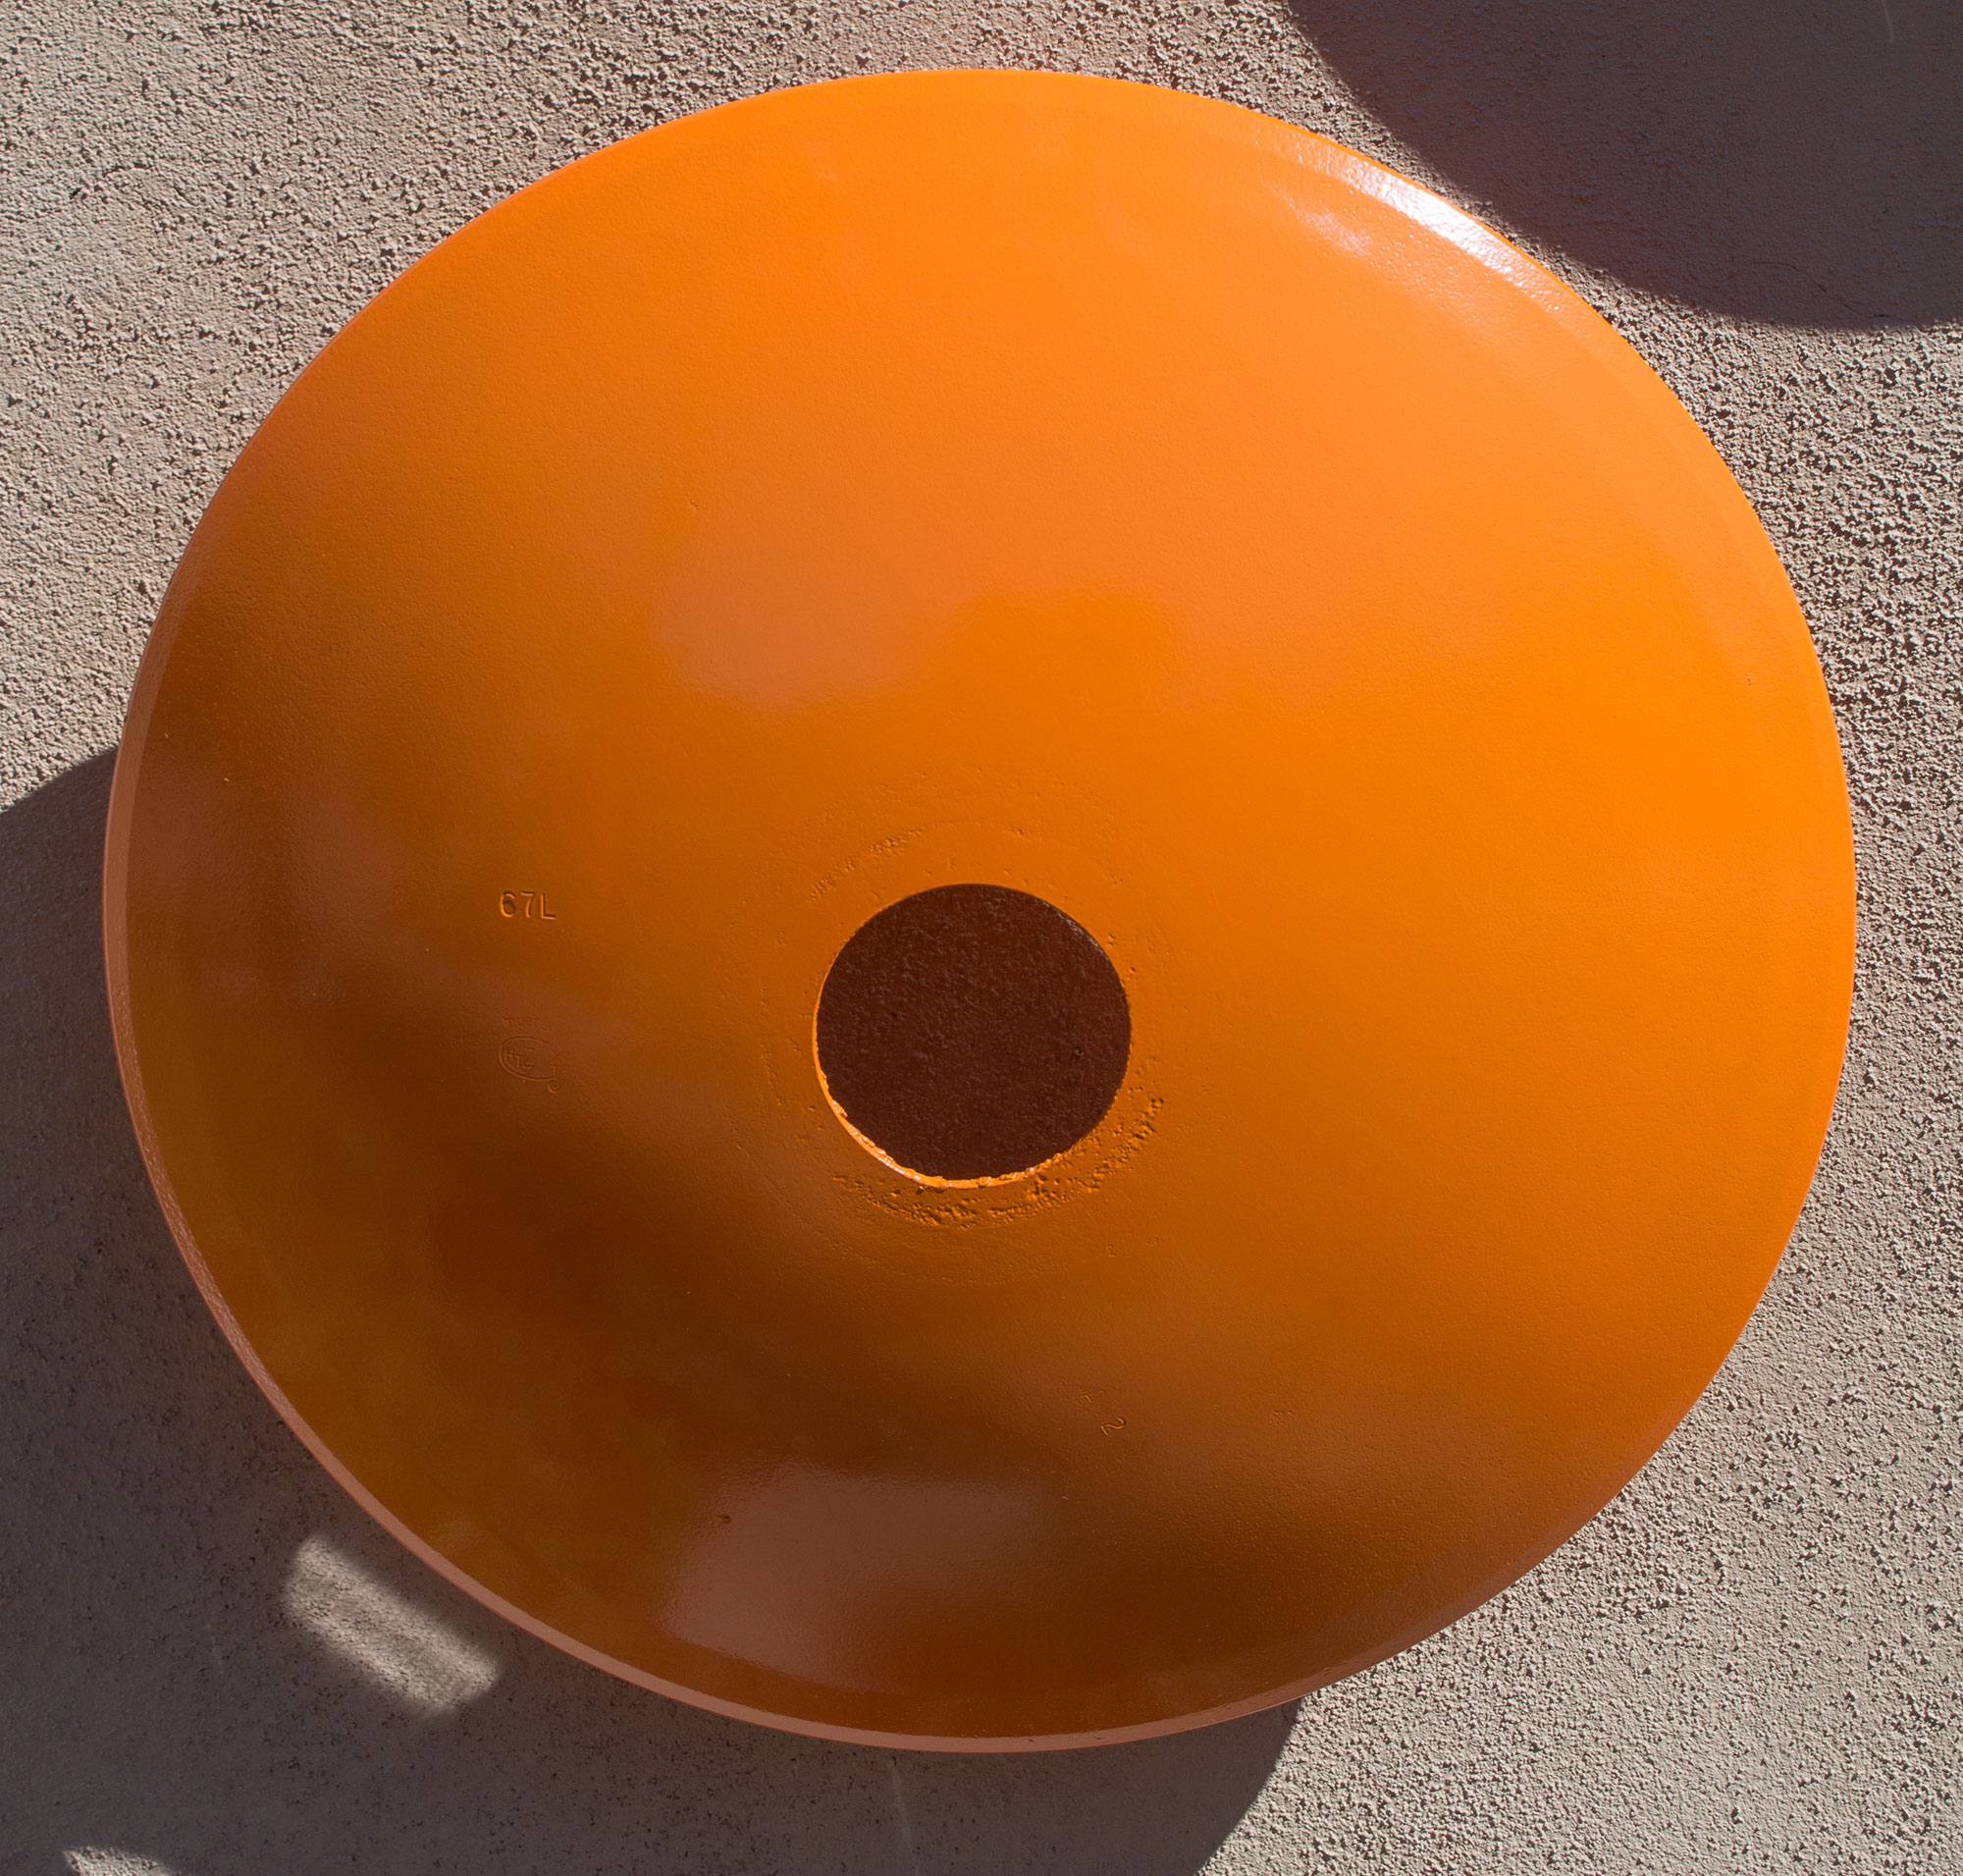 "Terrace Series, Disc Large (Light Orange)  22"" diameter $ 1,250."